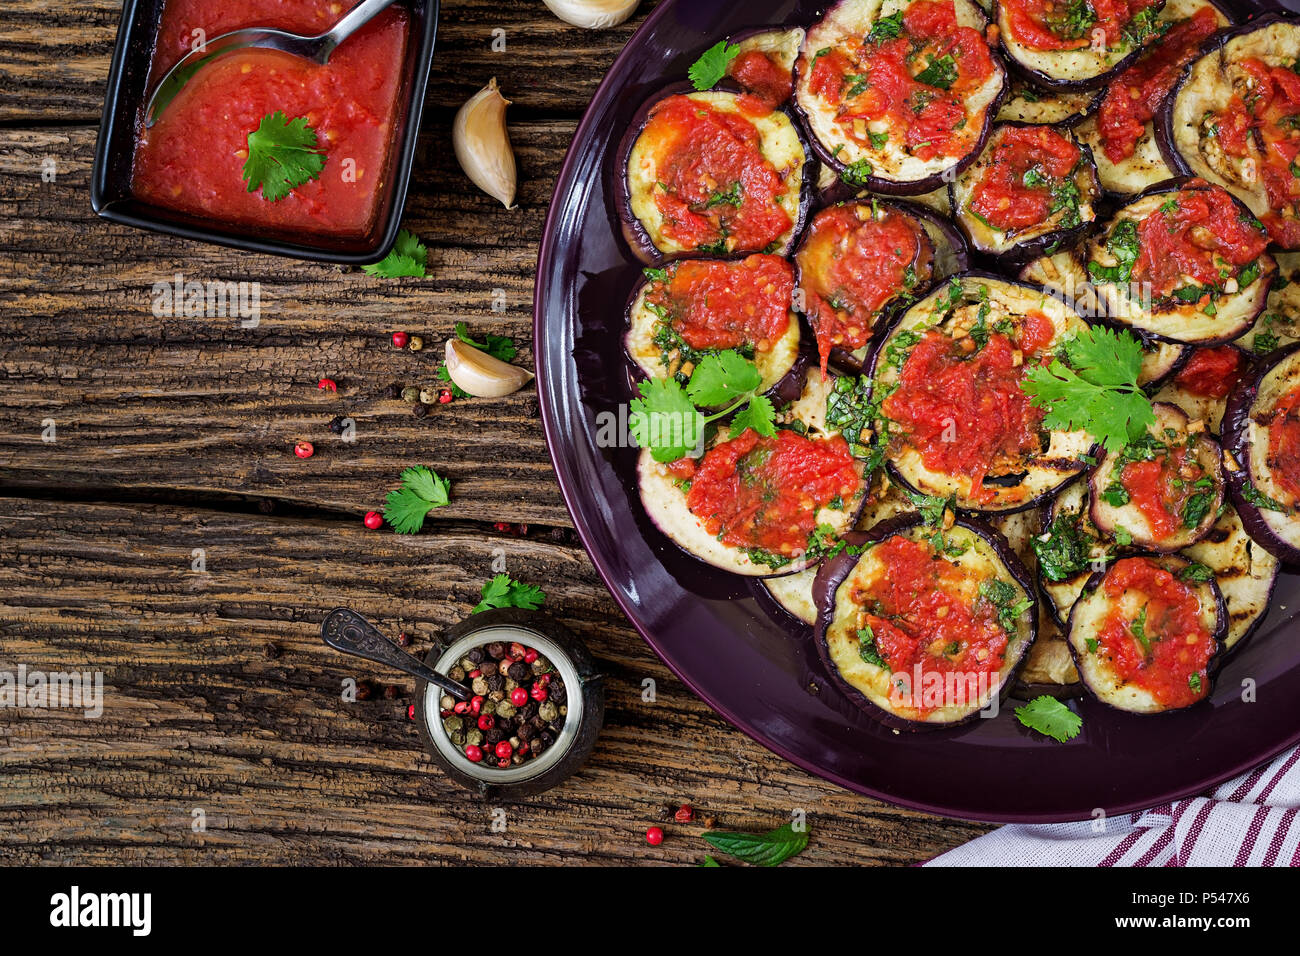 Eggplant grilled with tomato sauce, garlic, cilantro and mint. Vegan food. Grilled aubergine. Top view. Flat lay Stock Photo